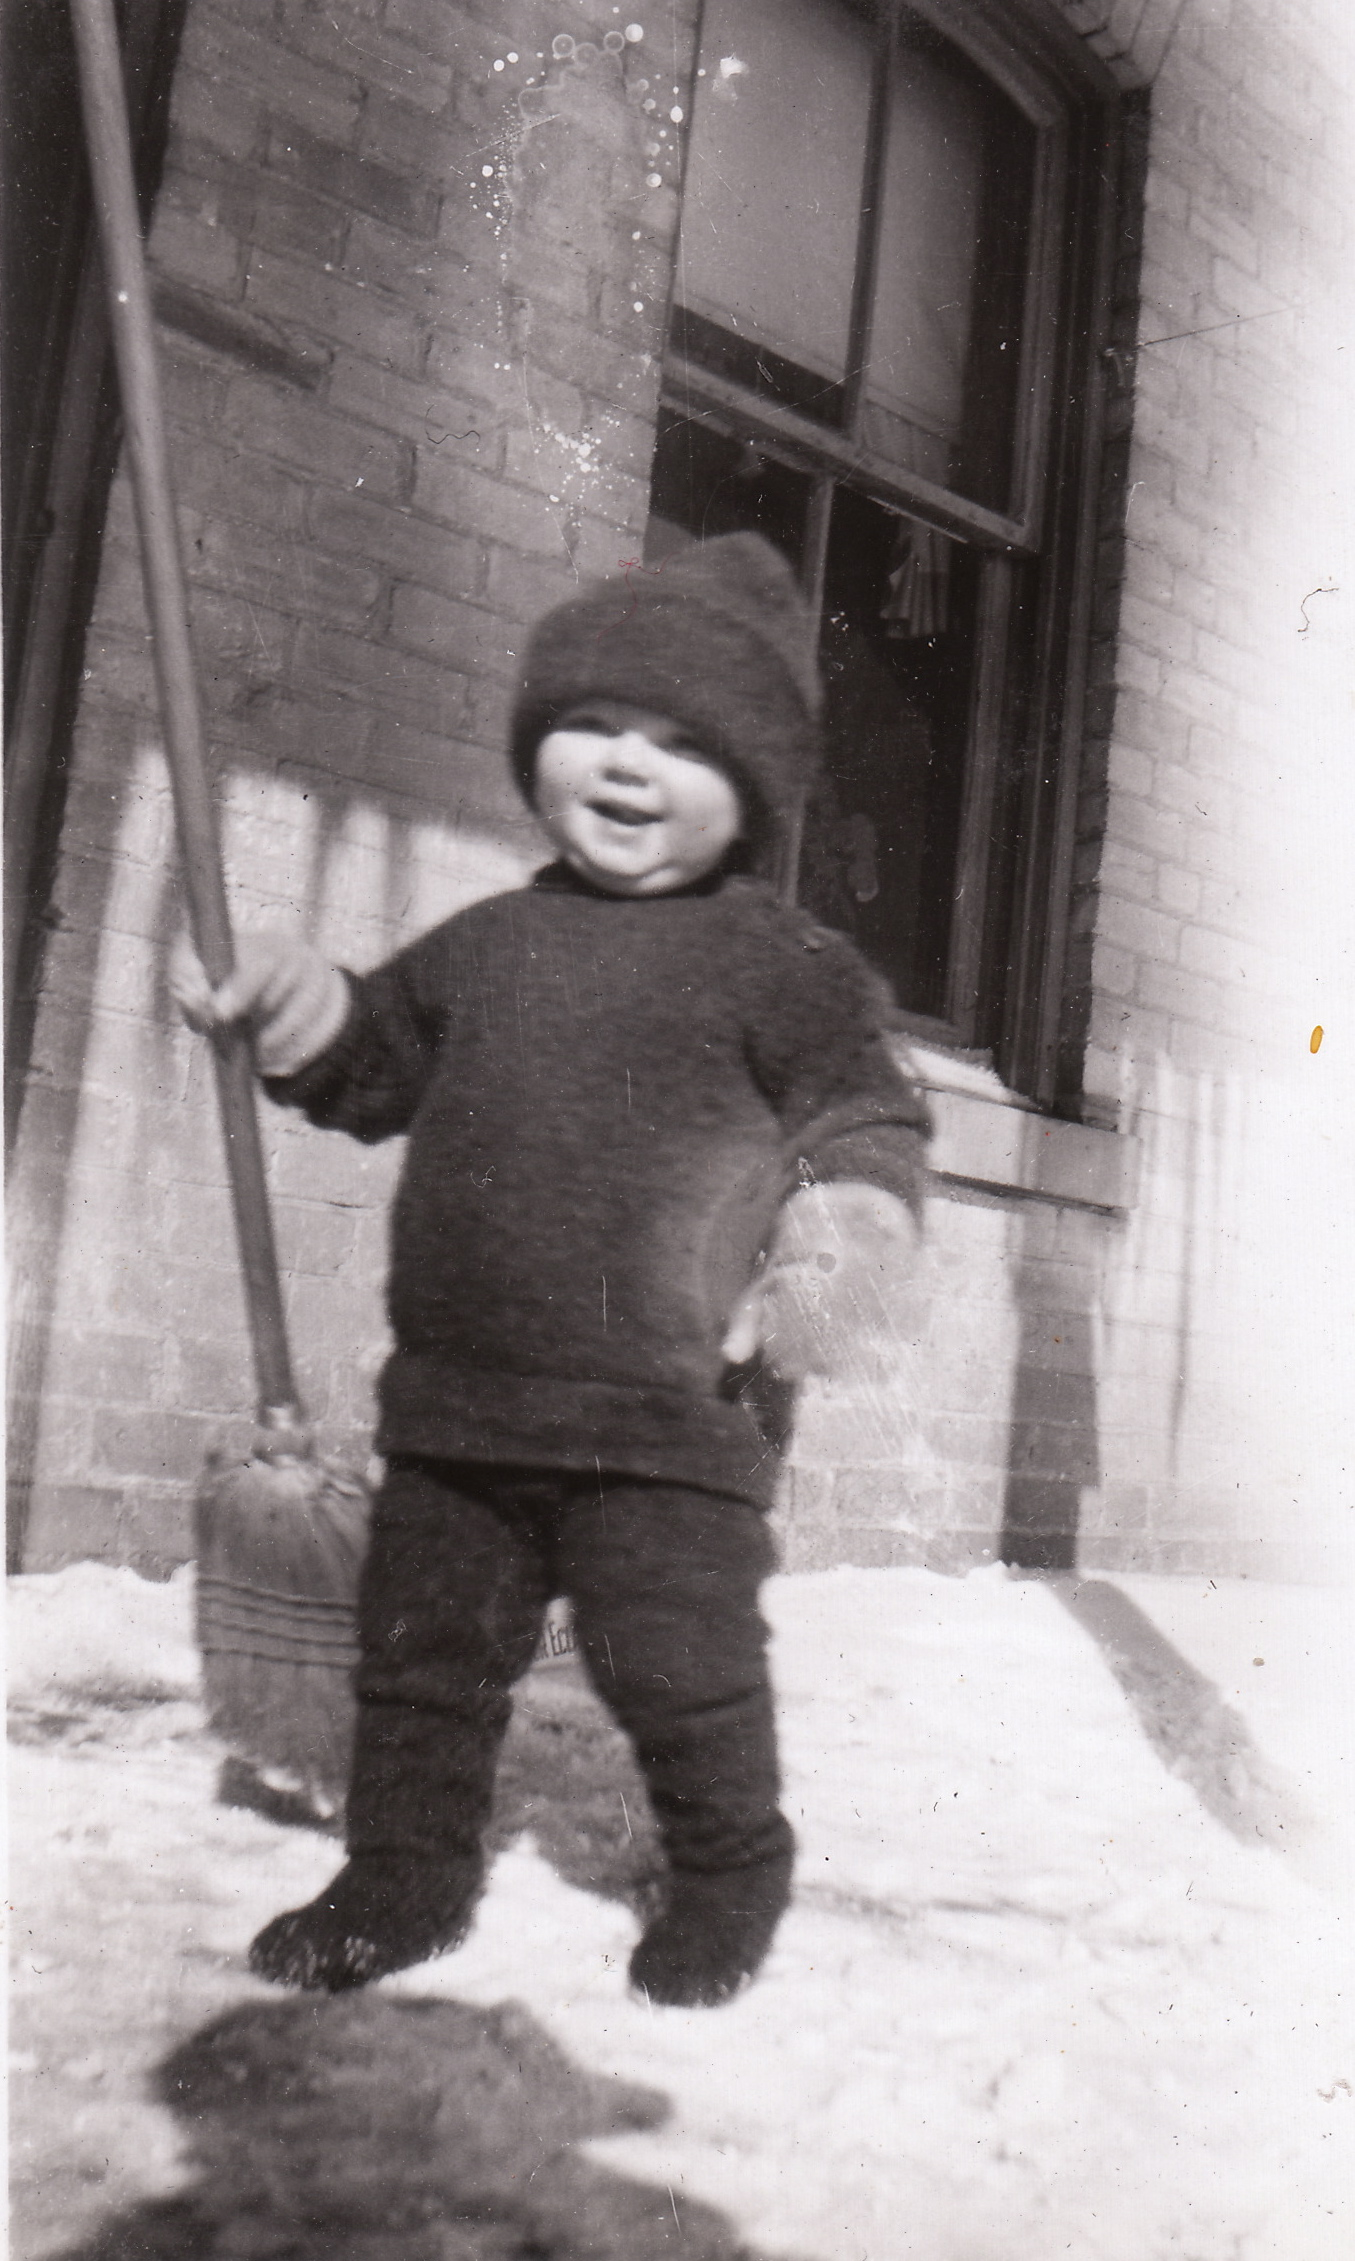 """James Reaney: Reflections on Shelter, Food, and """"When the Great Were Small"""""""